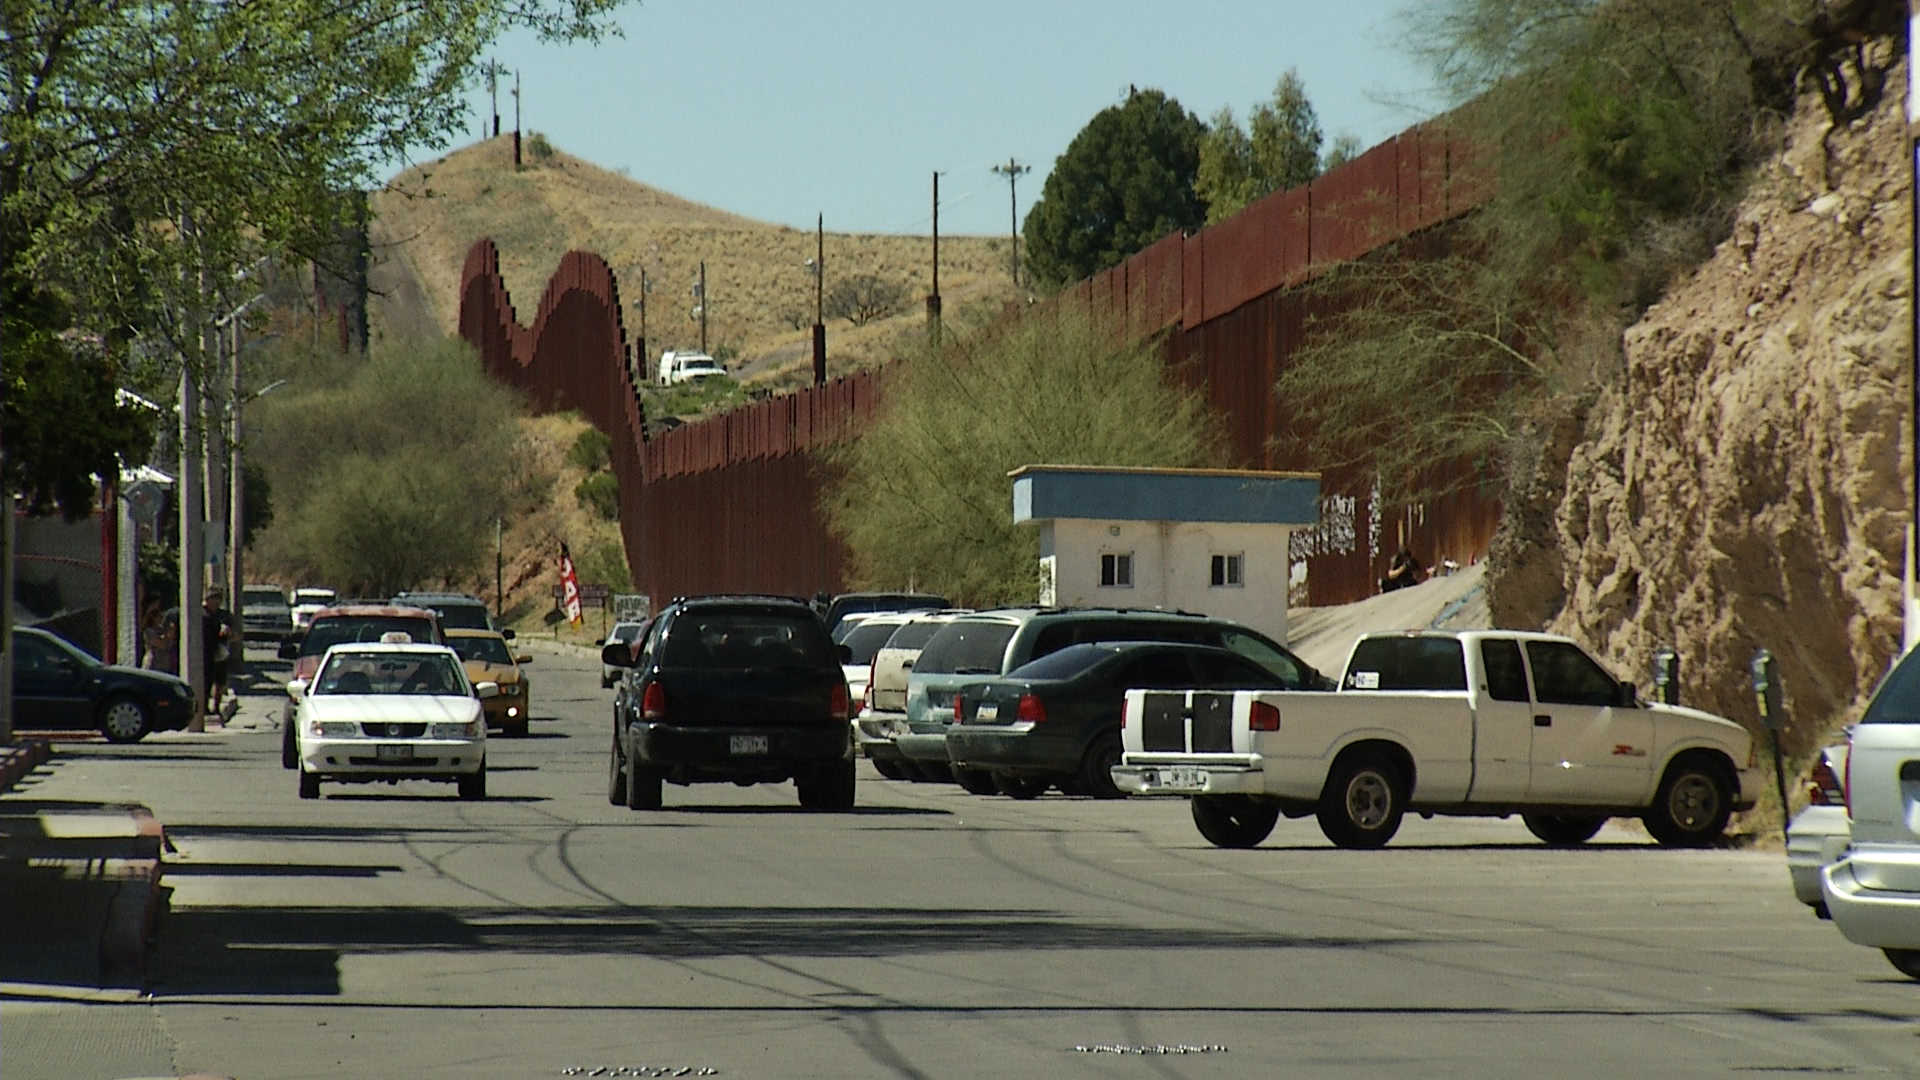 The border fence in Nogales, Sonora.